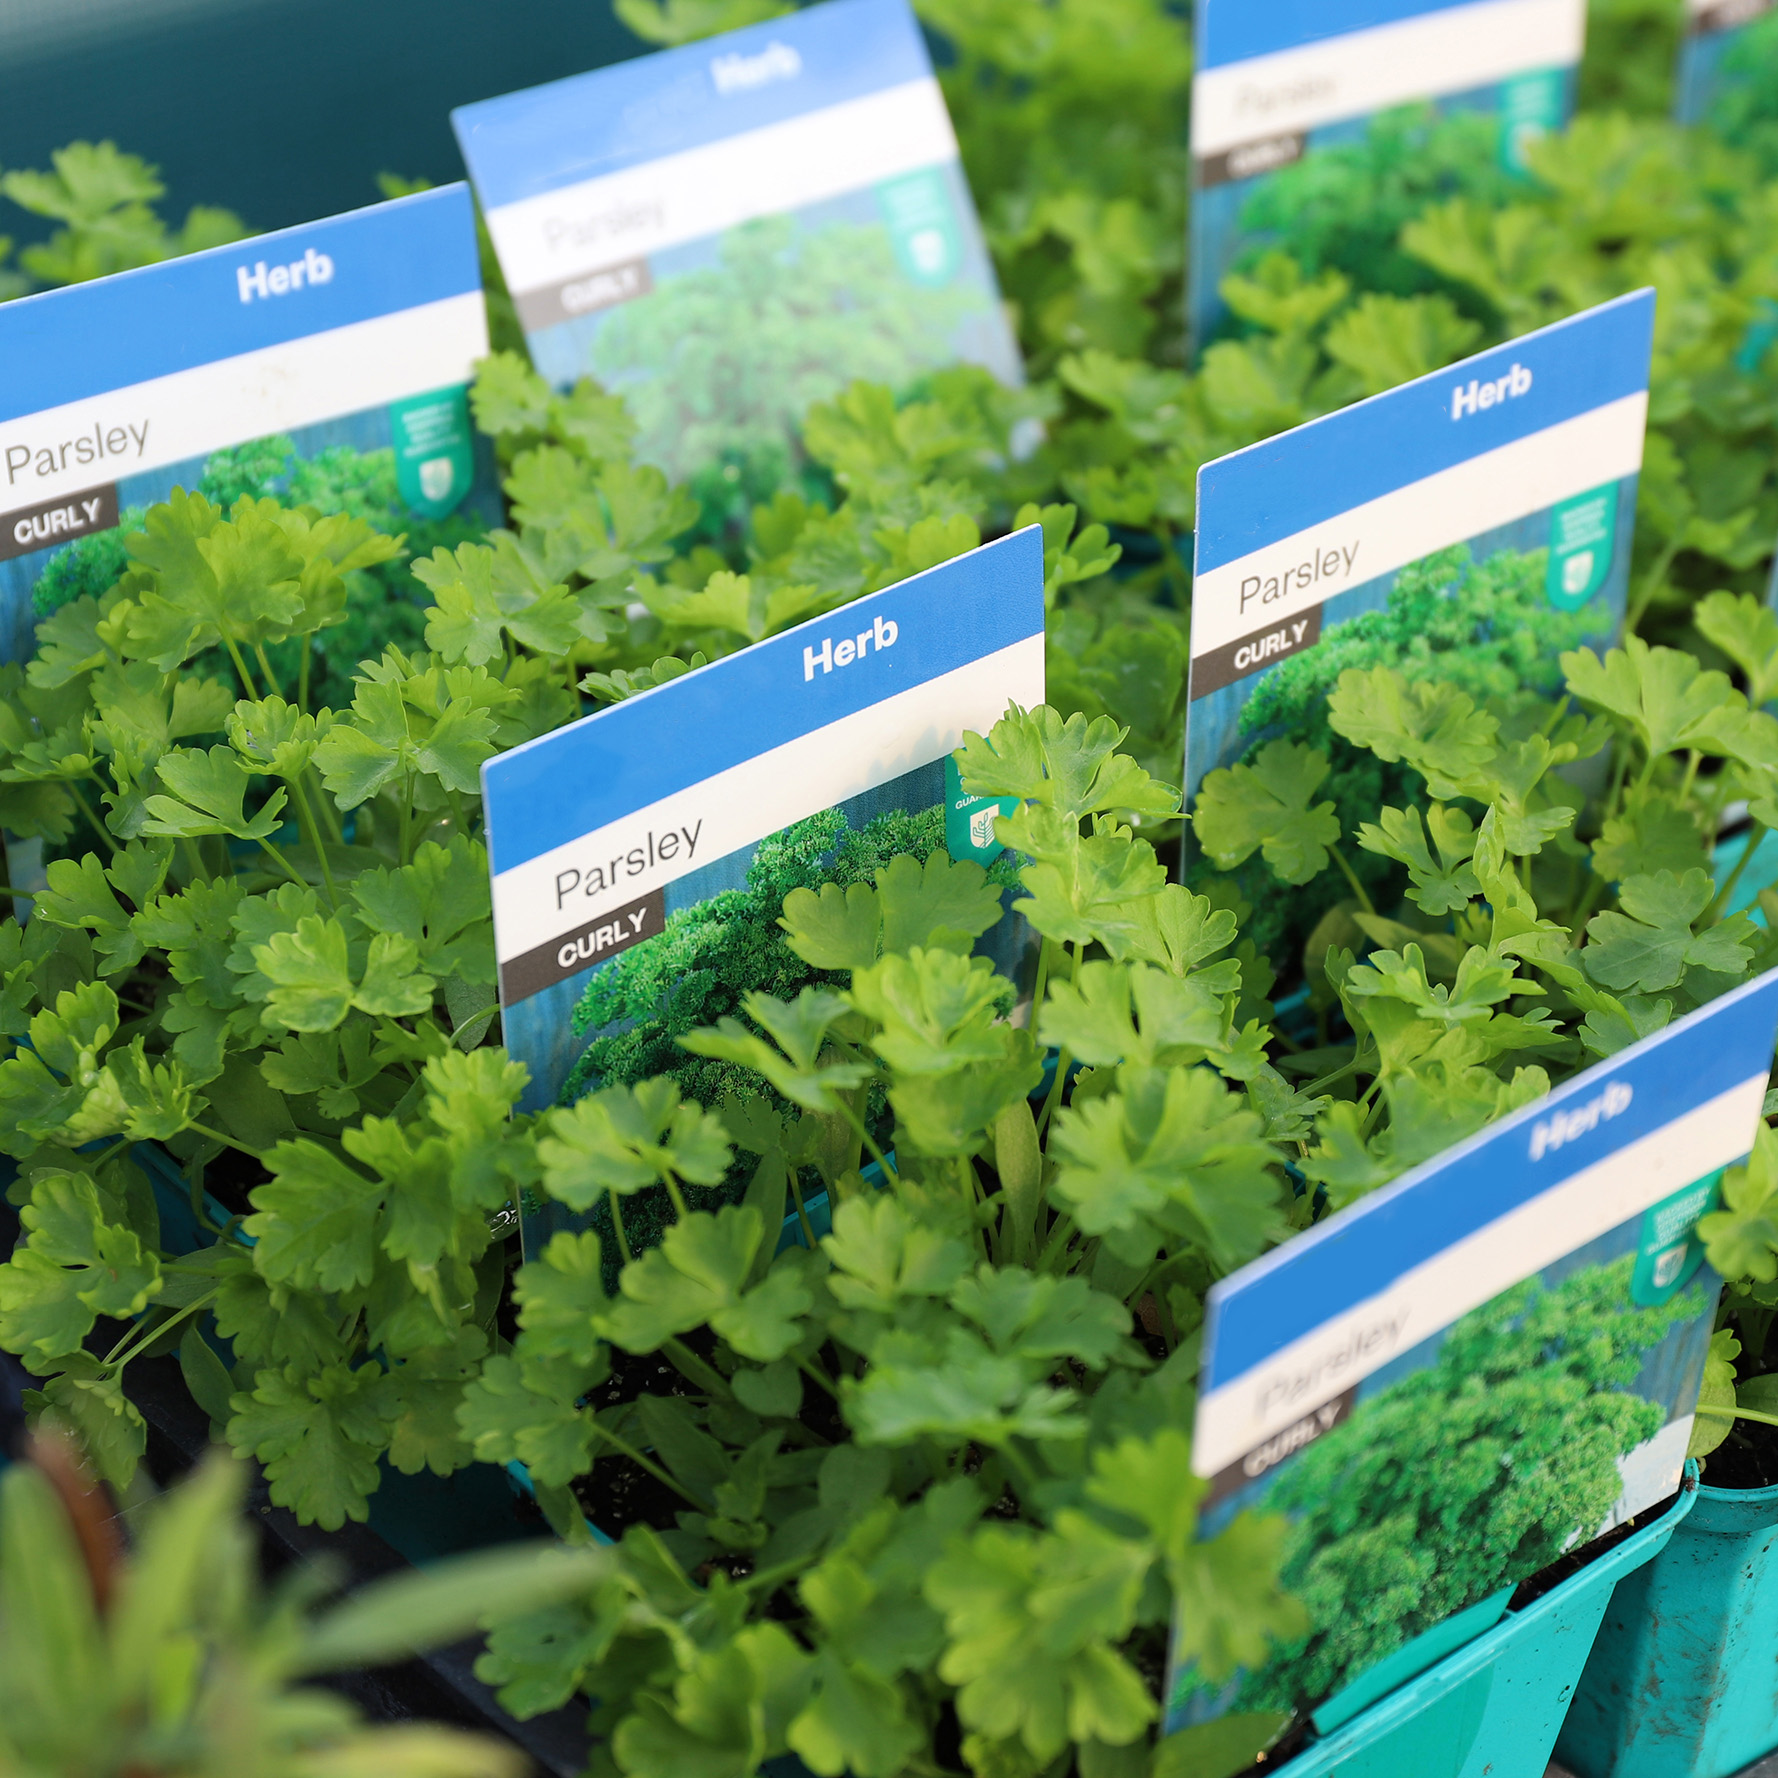 Herbs3 for $12 -